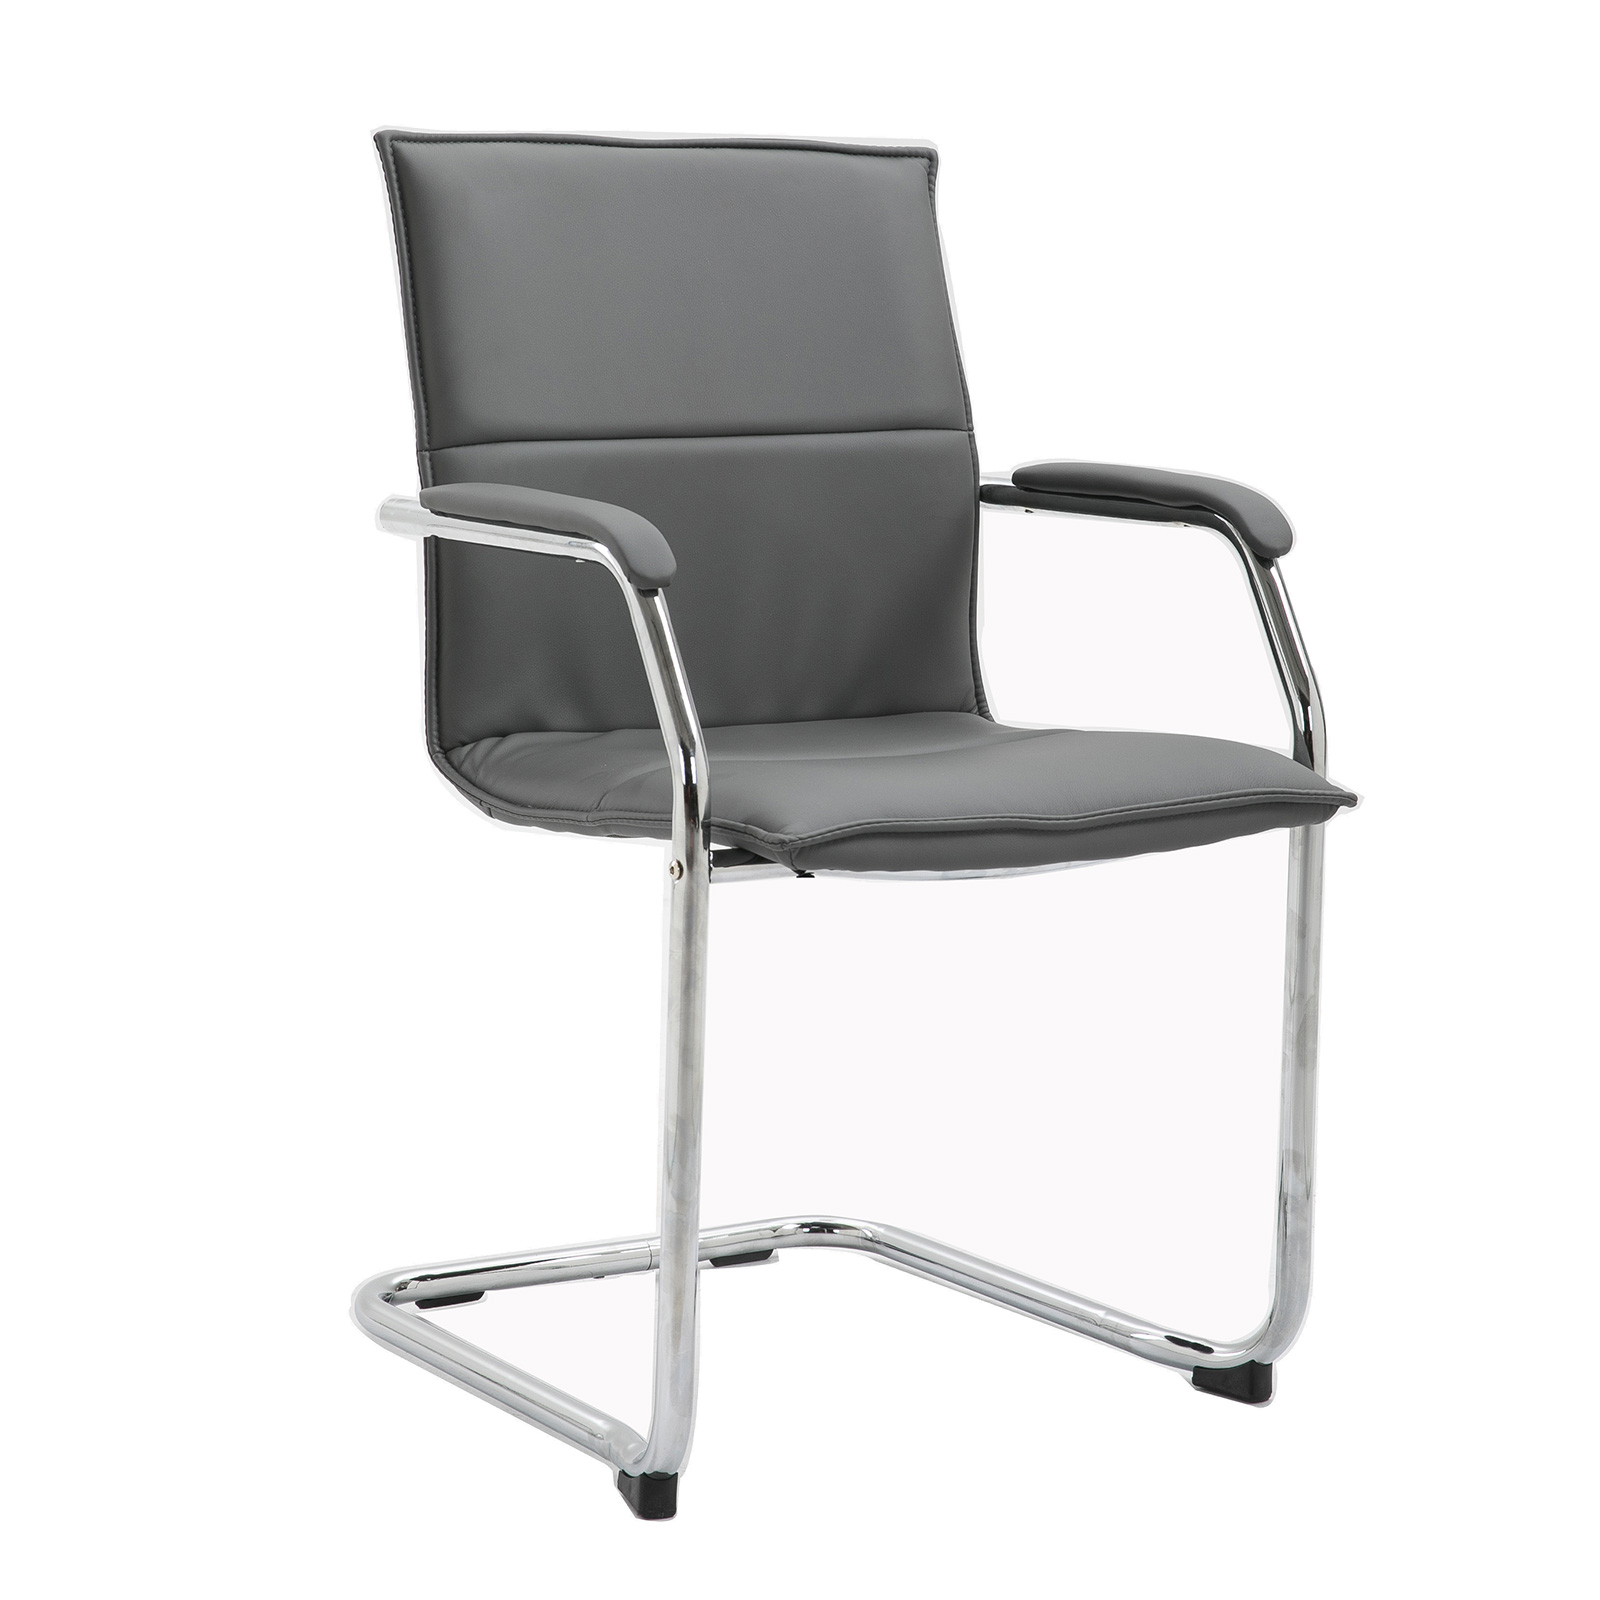 Boardroom / Meeting Essen stackable meeting room cantilever chair - grey faux leather